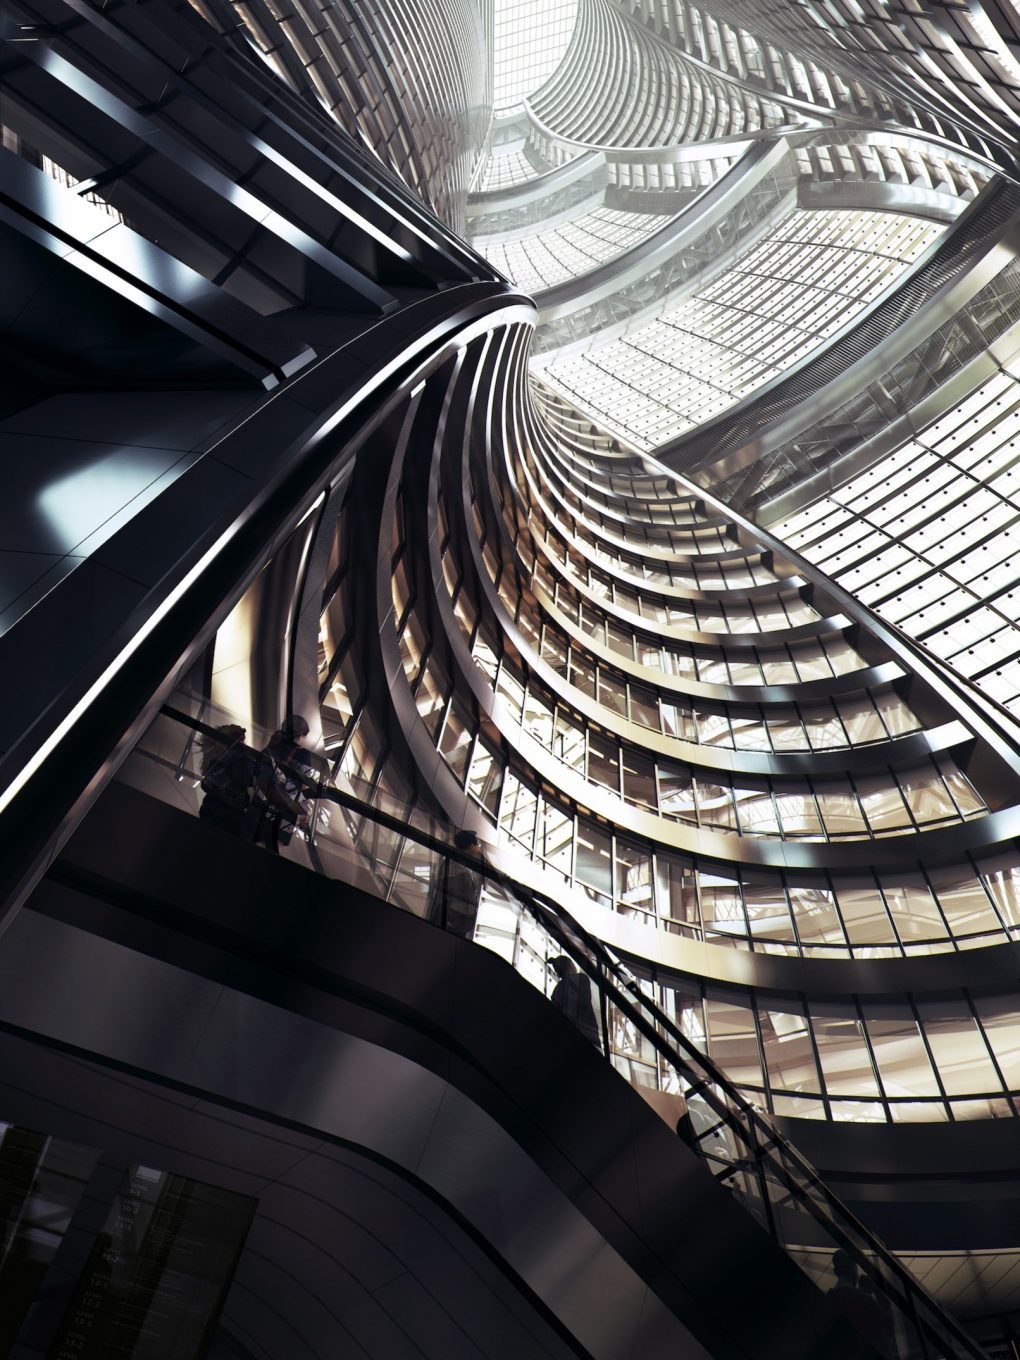 ZAHA HADID ARCHITECTS DESIGNED WHAT WILL BE THE WORLD'S LARGEST ATRIUM